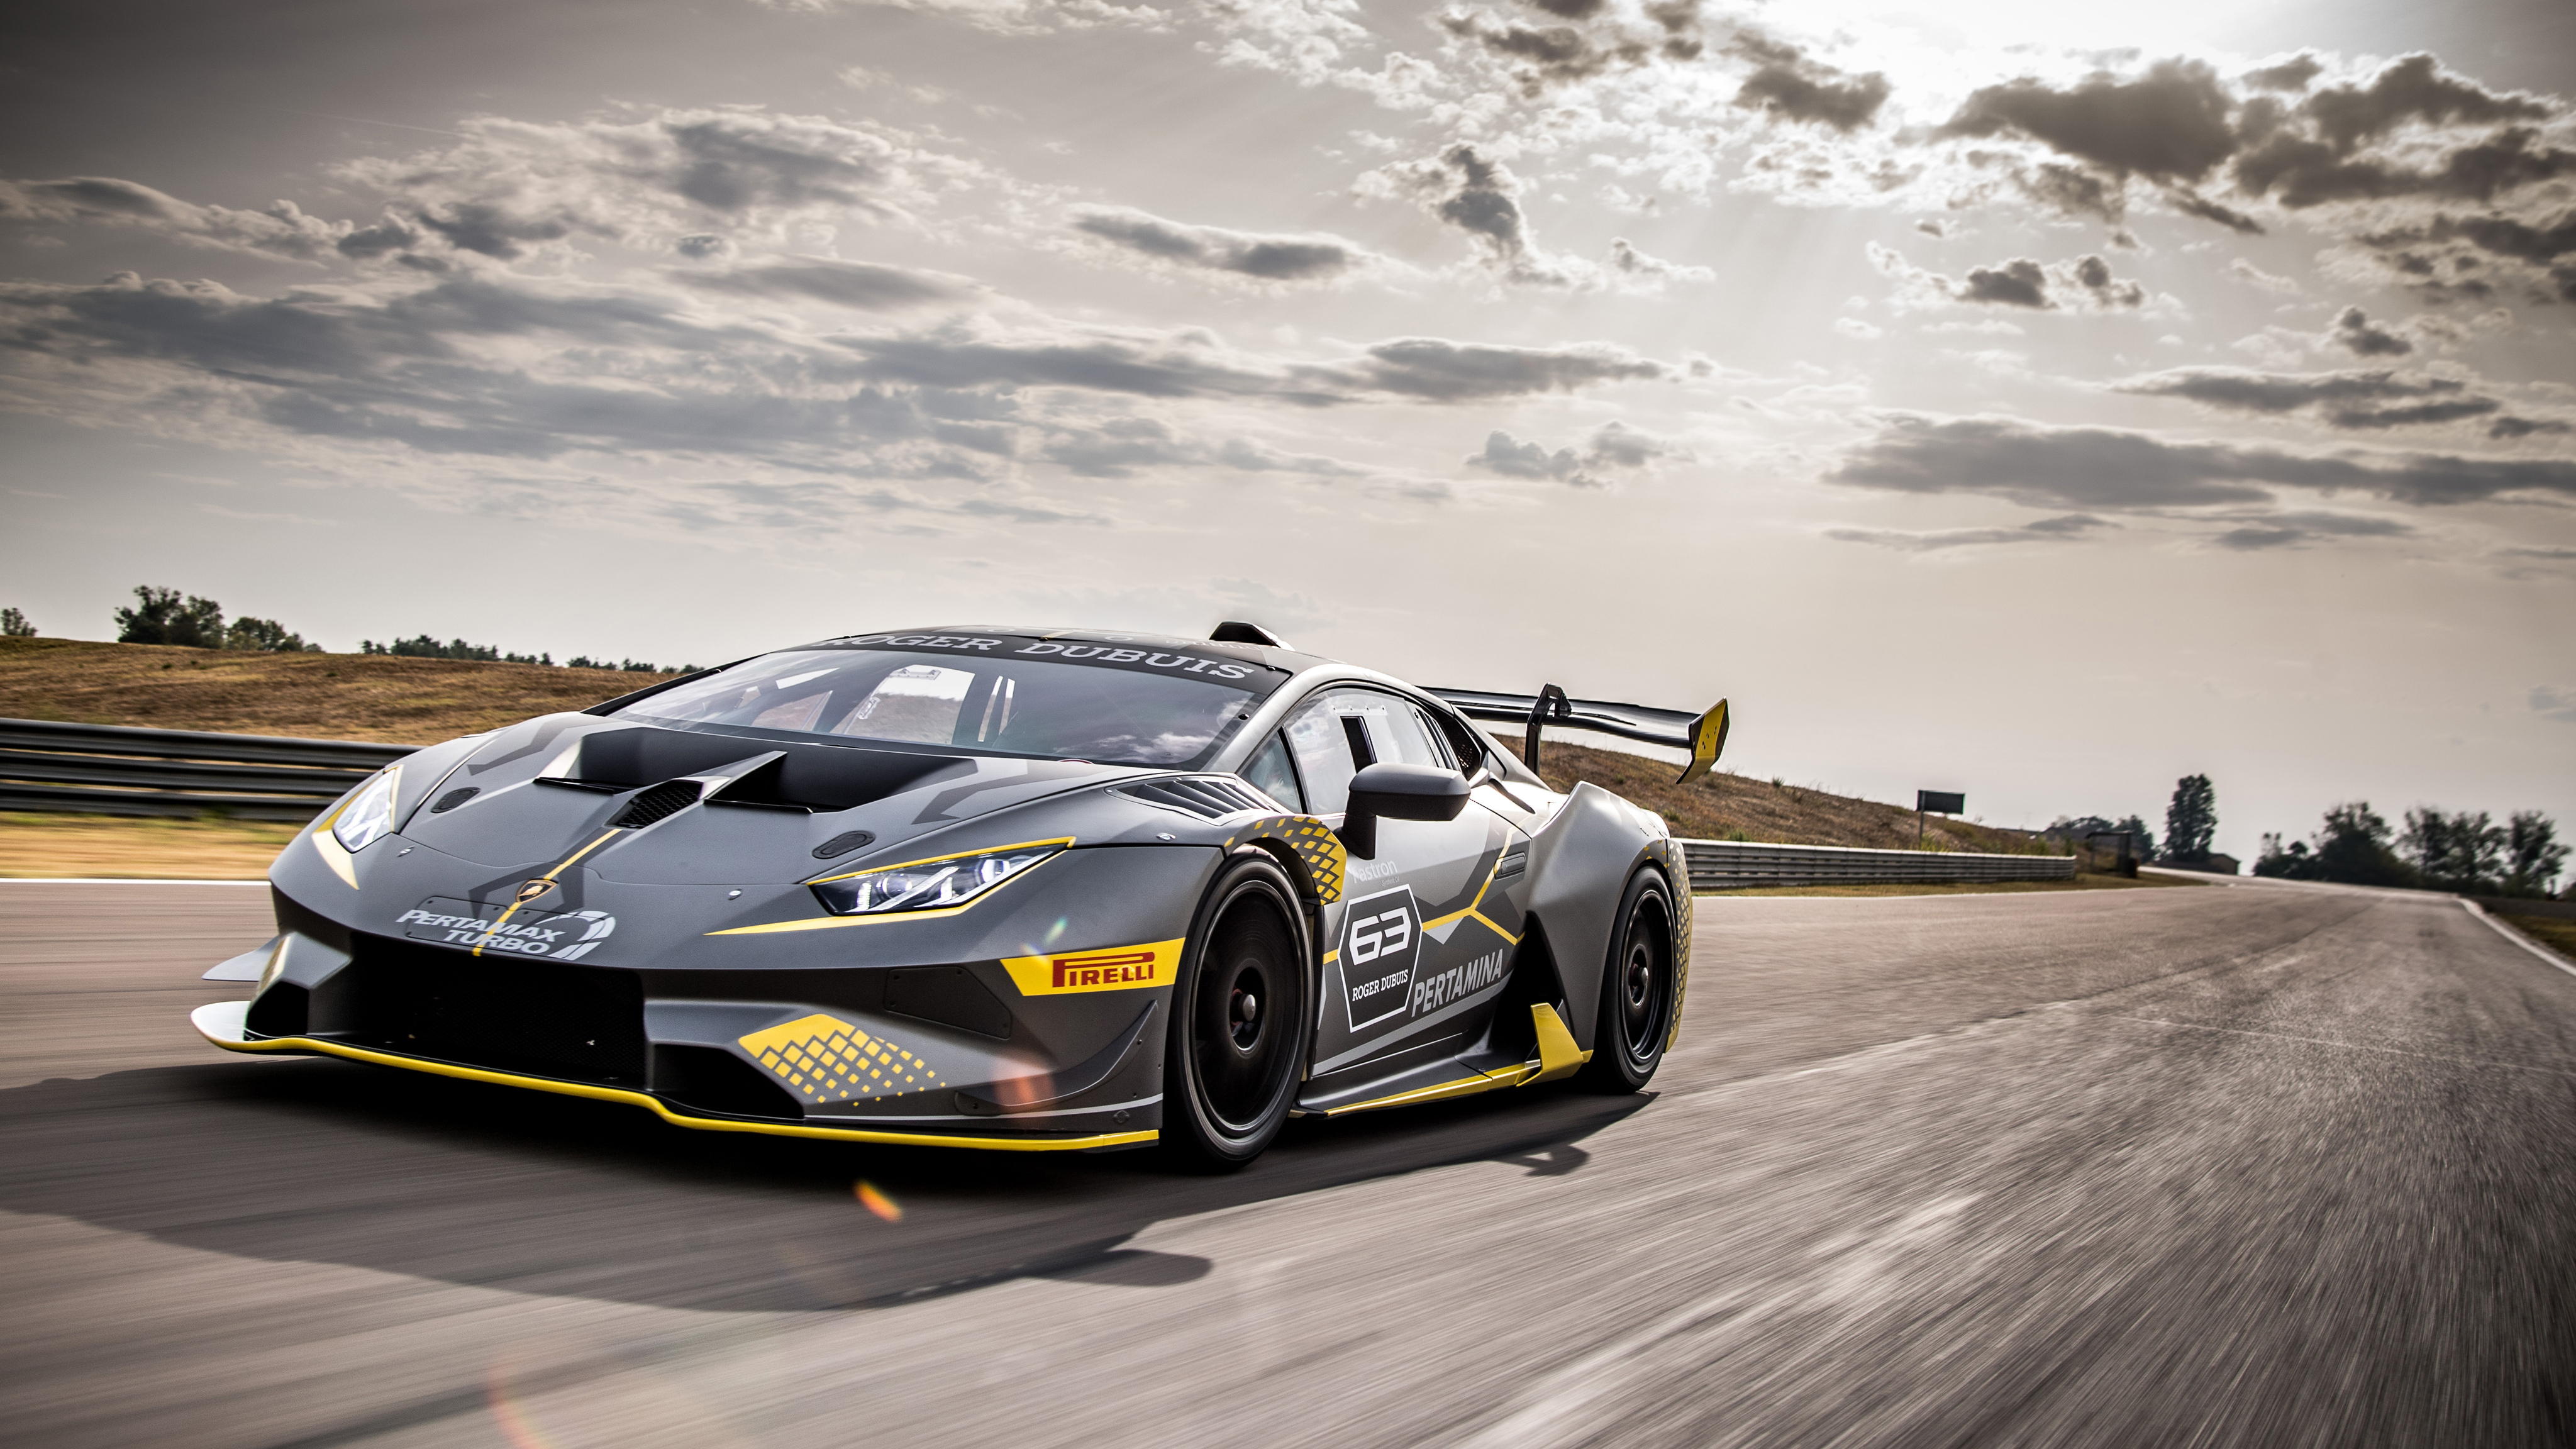 2018 Lamborghini Huracan Super Trofeo Evo 4k Wallpaper Hd Car